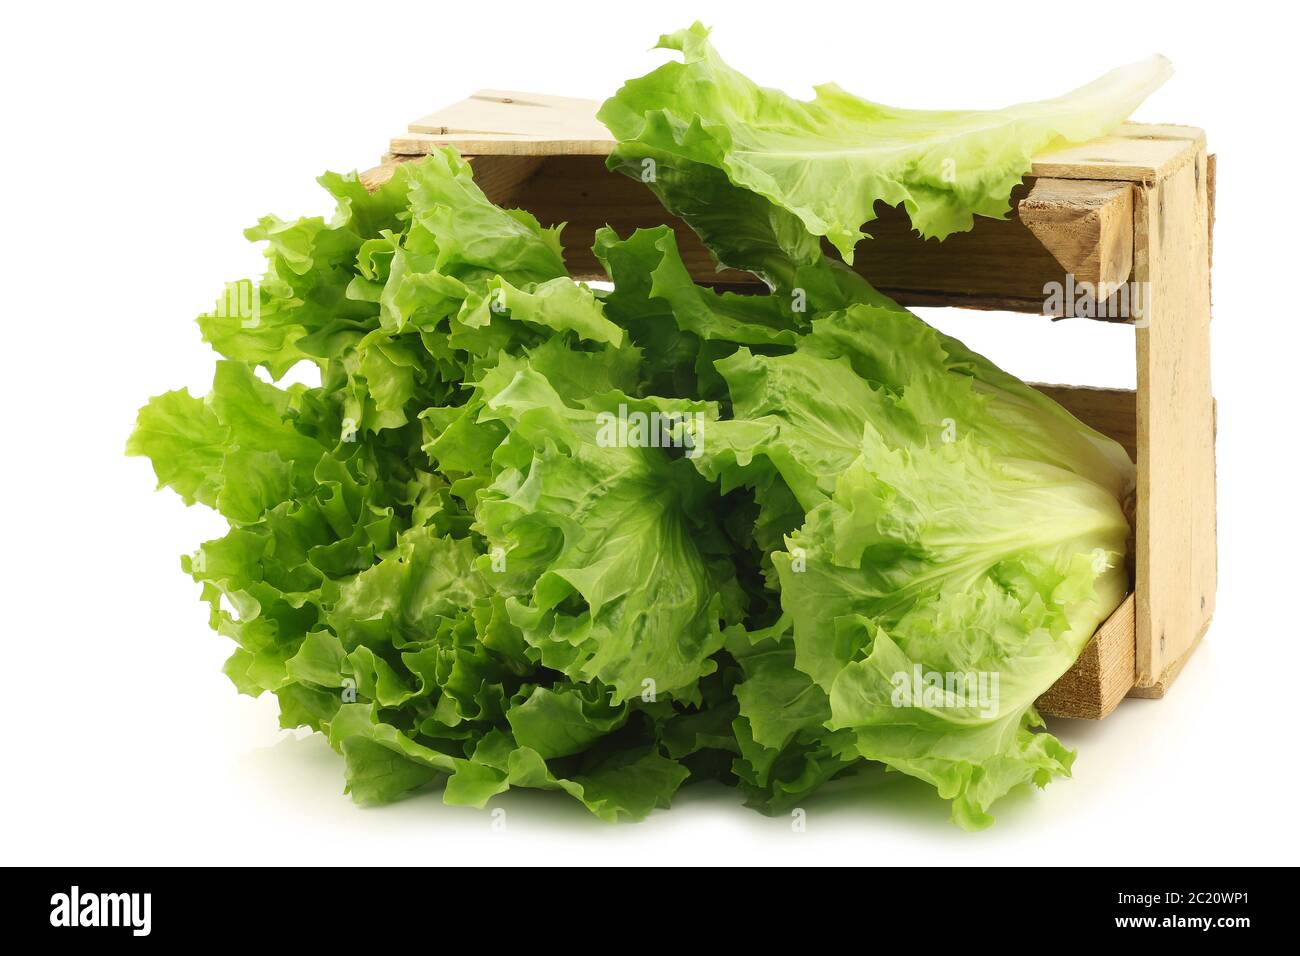 freshly harvested endive in a wooden box on a white background Stock Photo